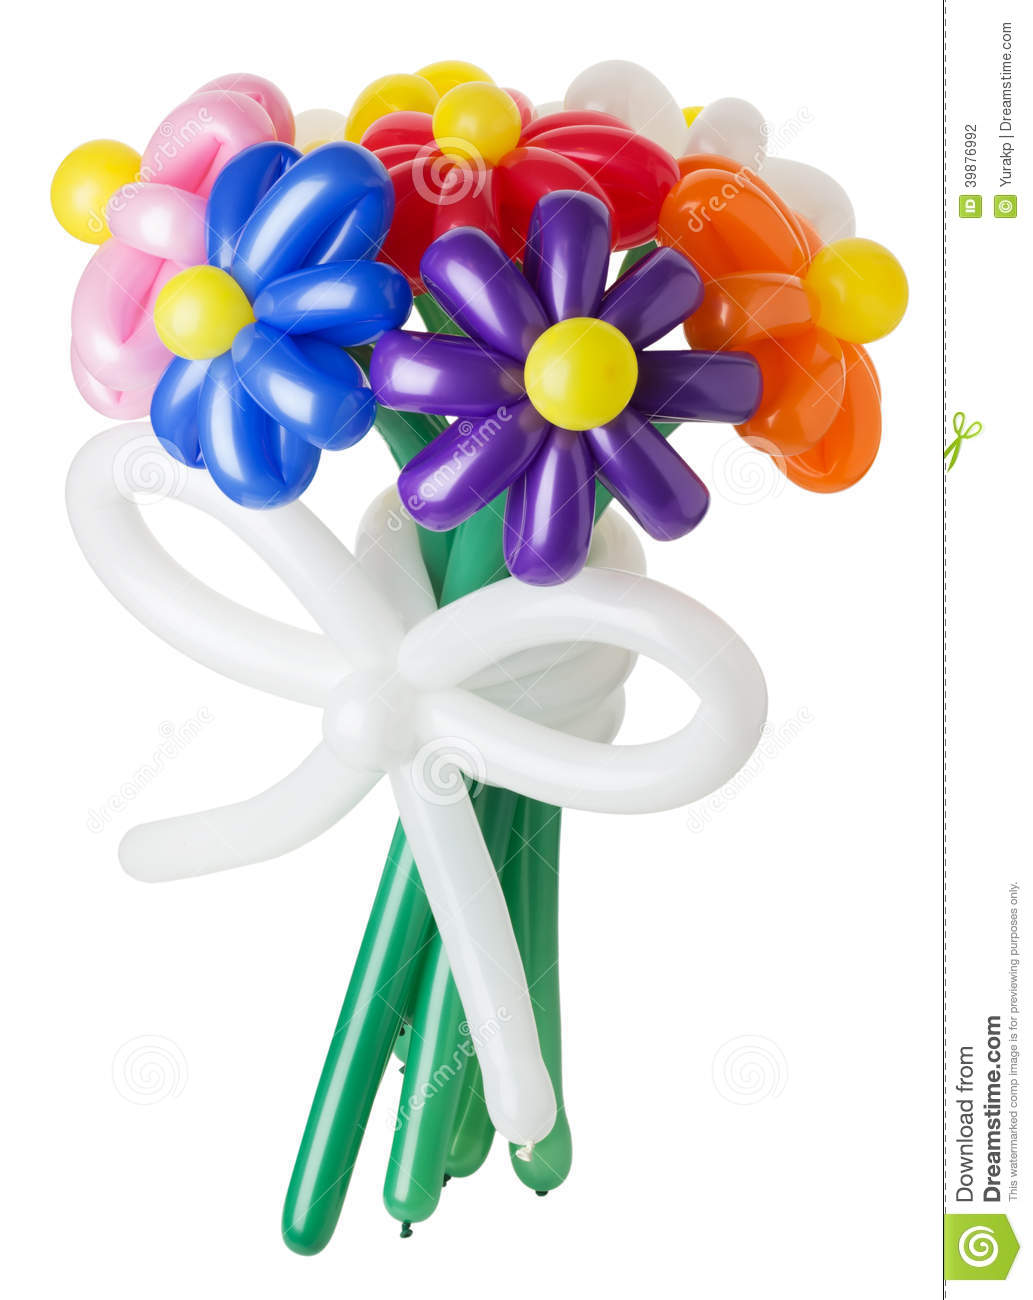 Bouquet with colorful balloon flowers on white background stock photo image 39876992